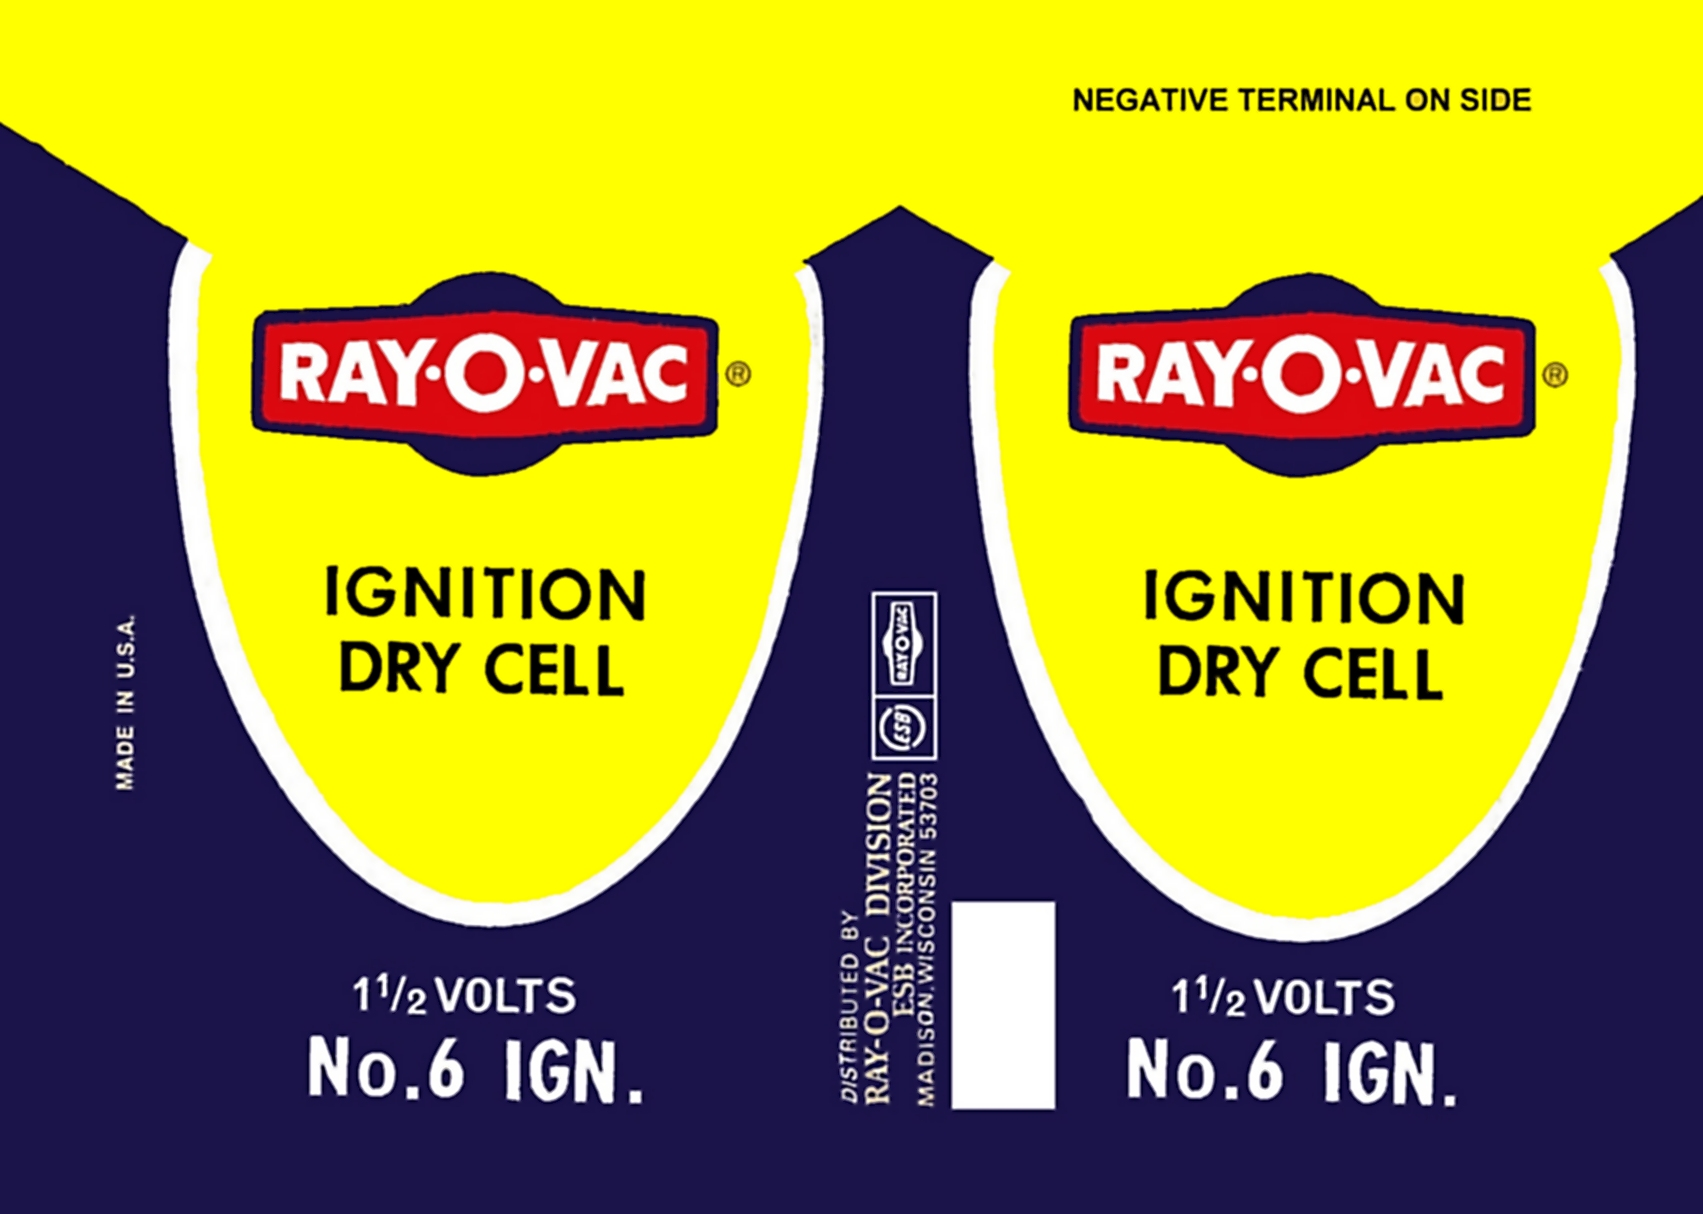 Ray o vac label wrapper from copy scan duplicate reproduction vintage